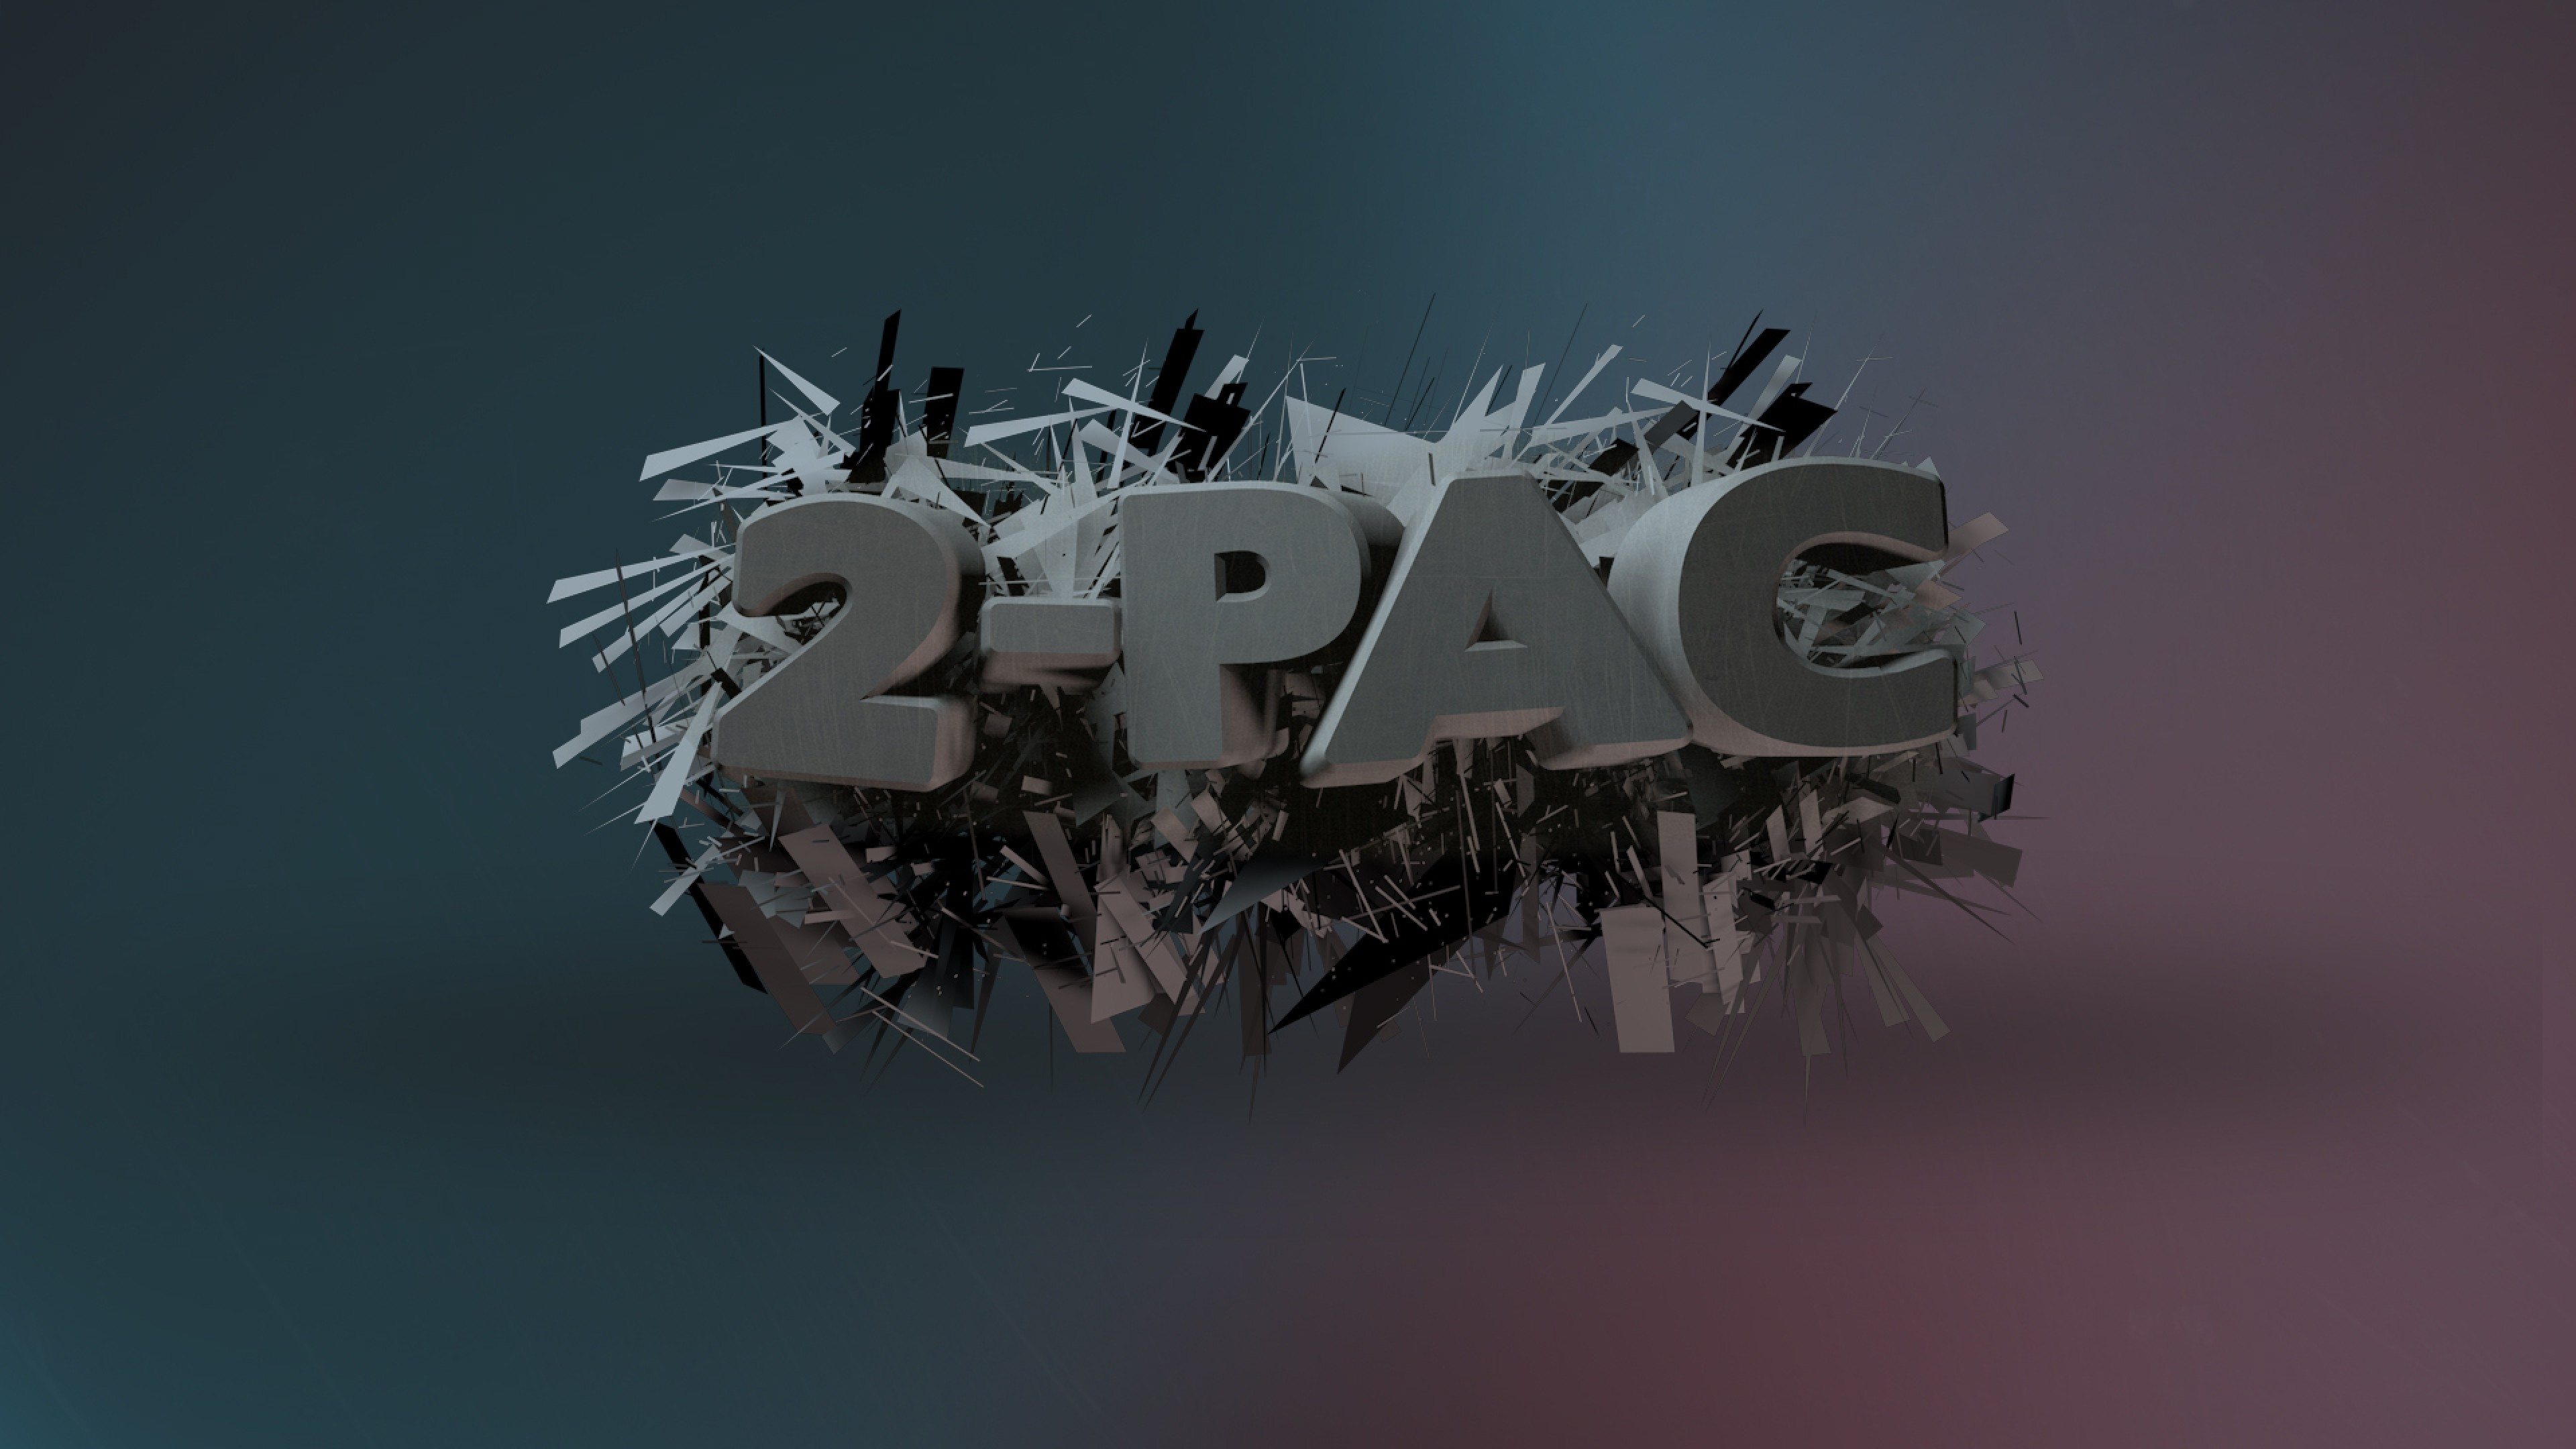 3840x2160 Preview wallpaper 2pac, tupac, rap, music, hip-hop, west-